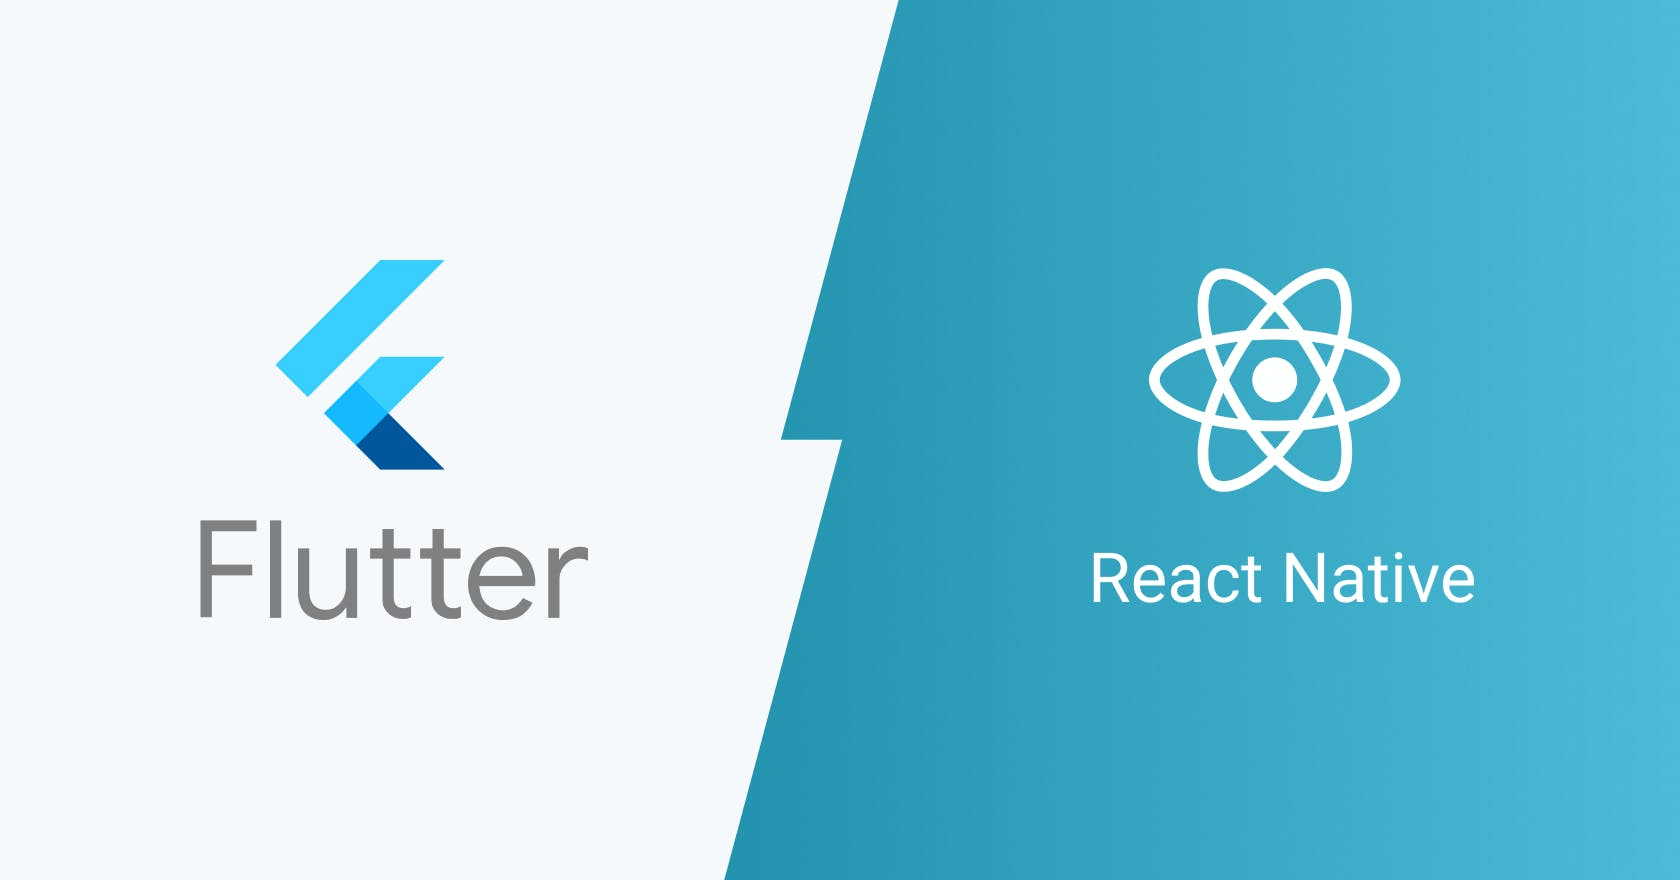 Flutter vs React Native: What are the differences?